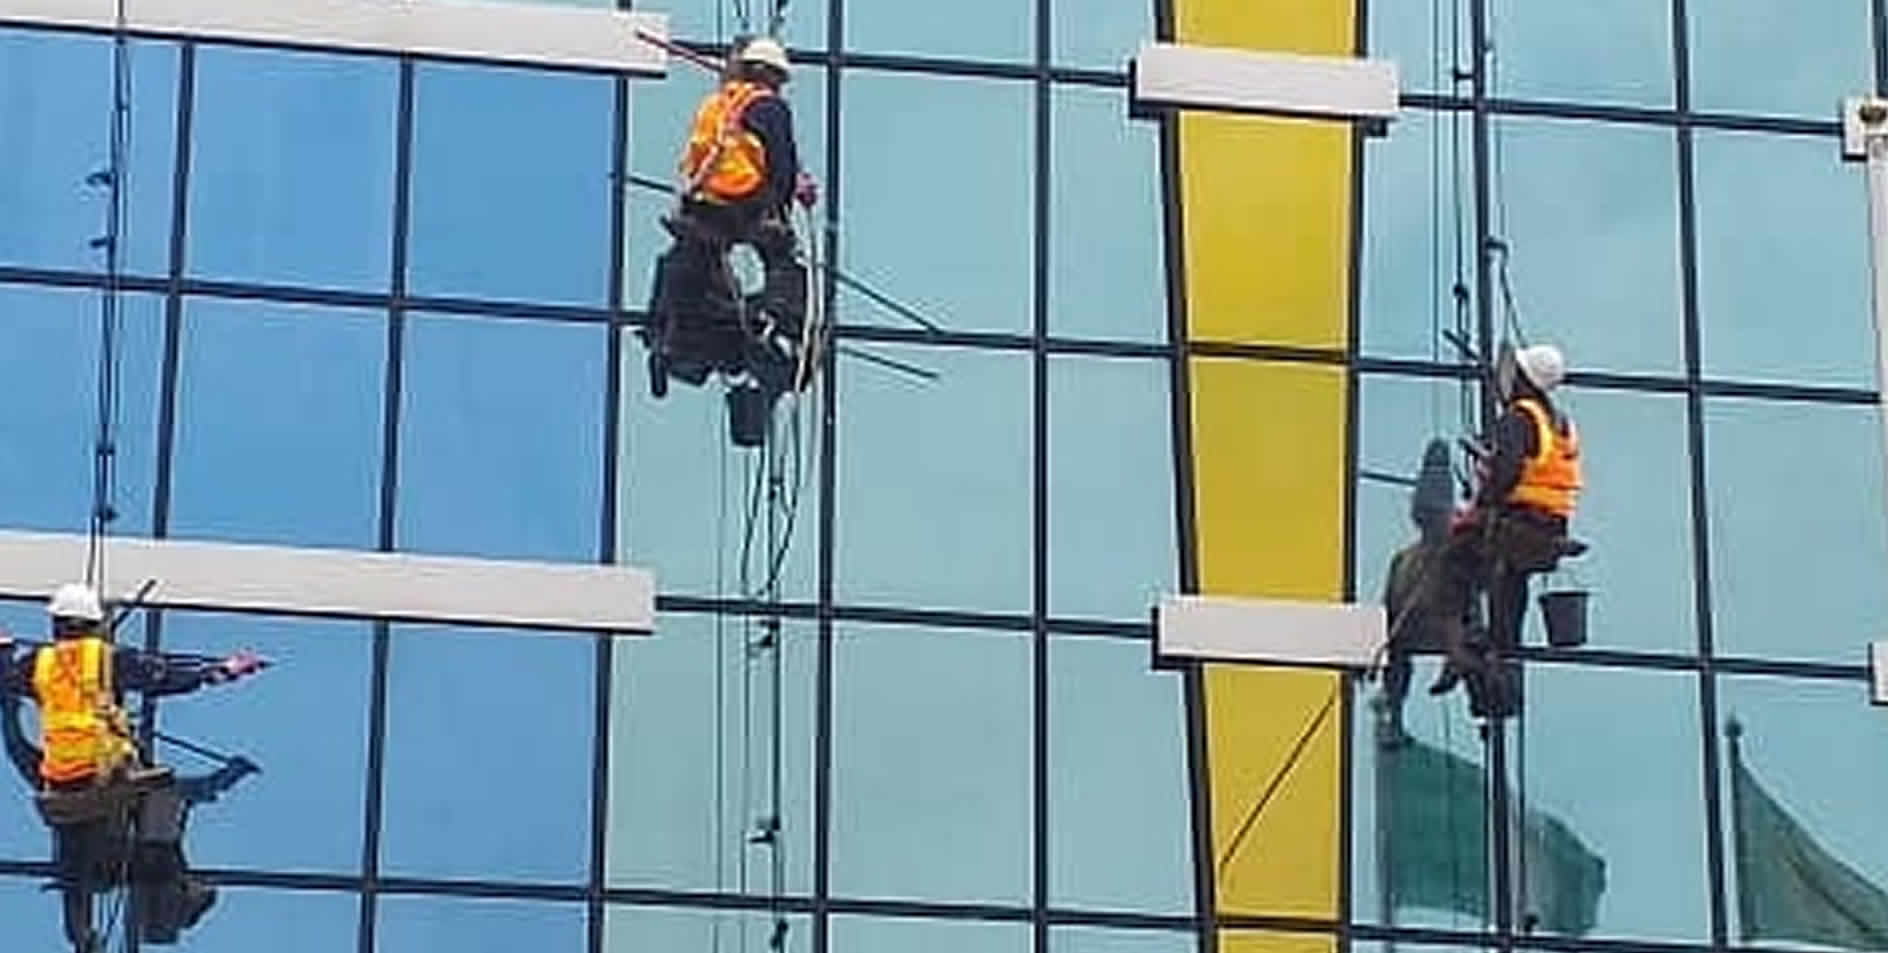 Contact chemoclean services for high rise window cleaning